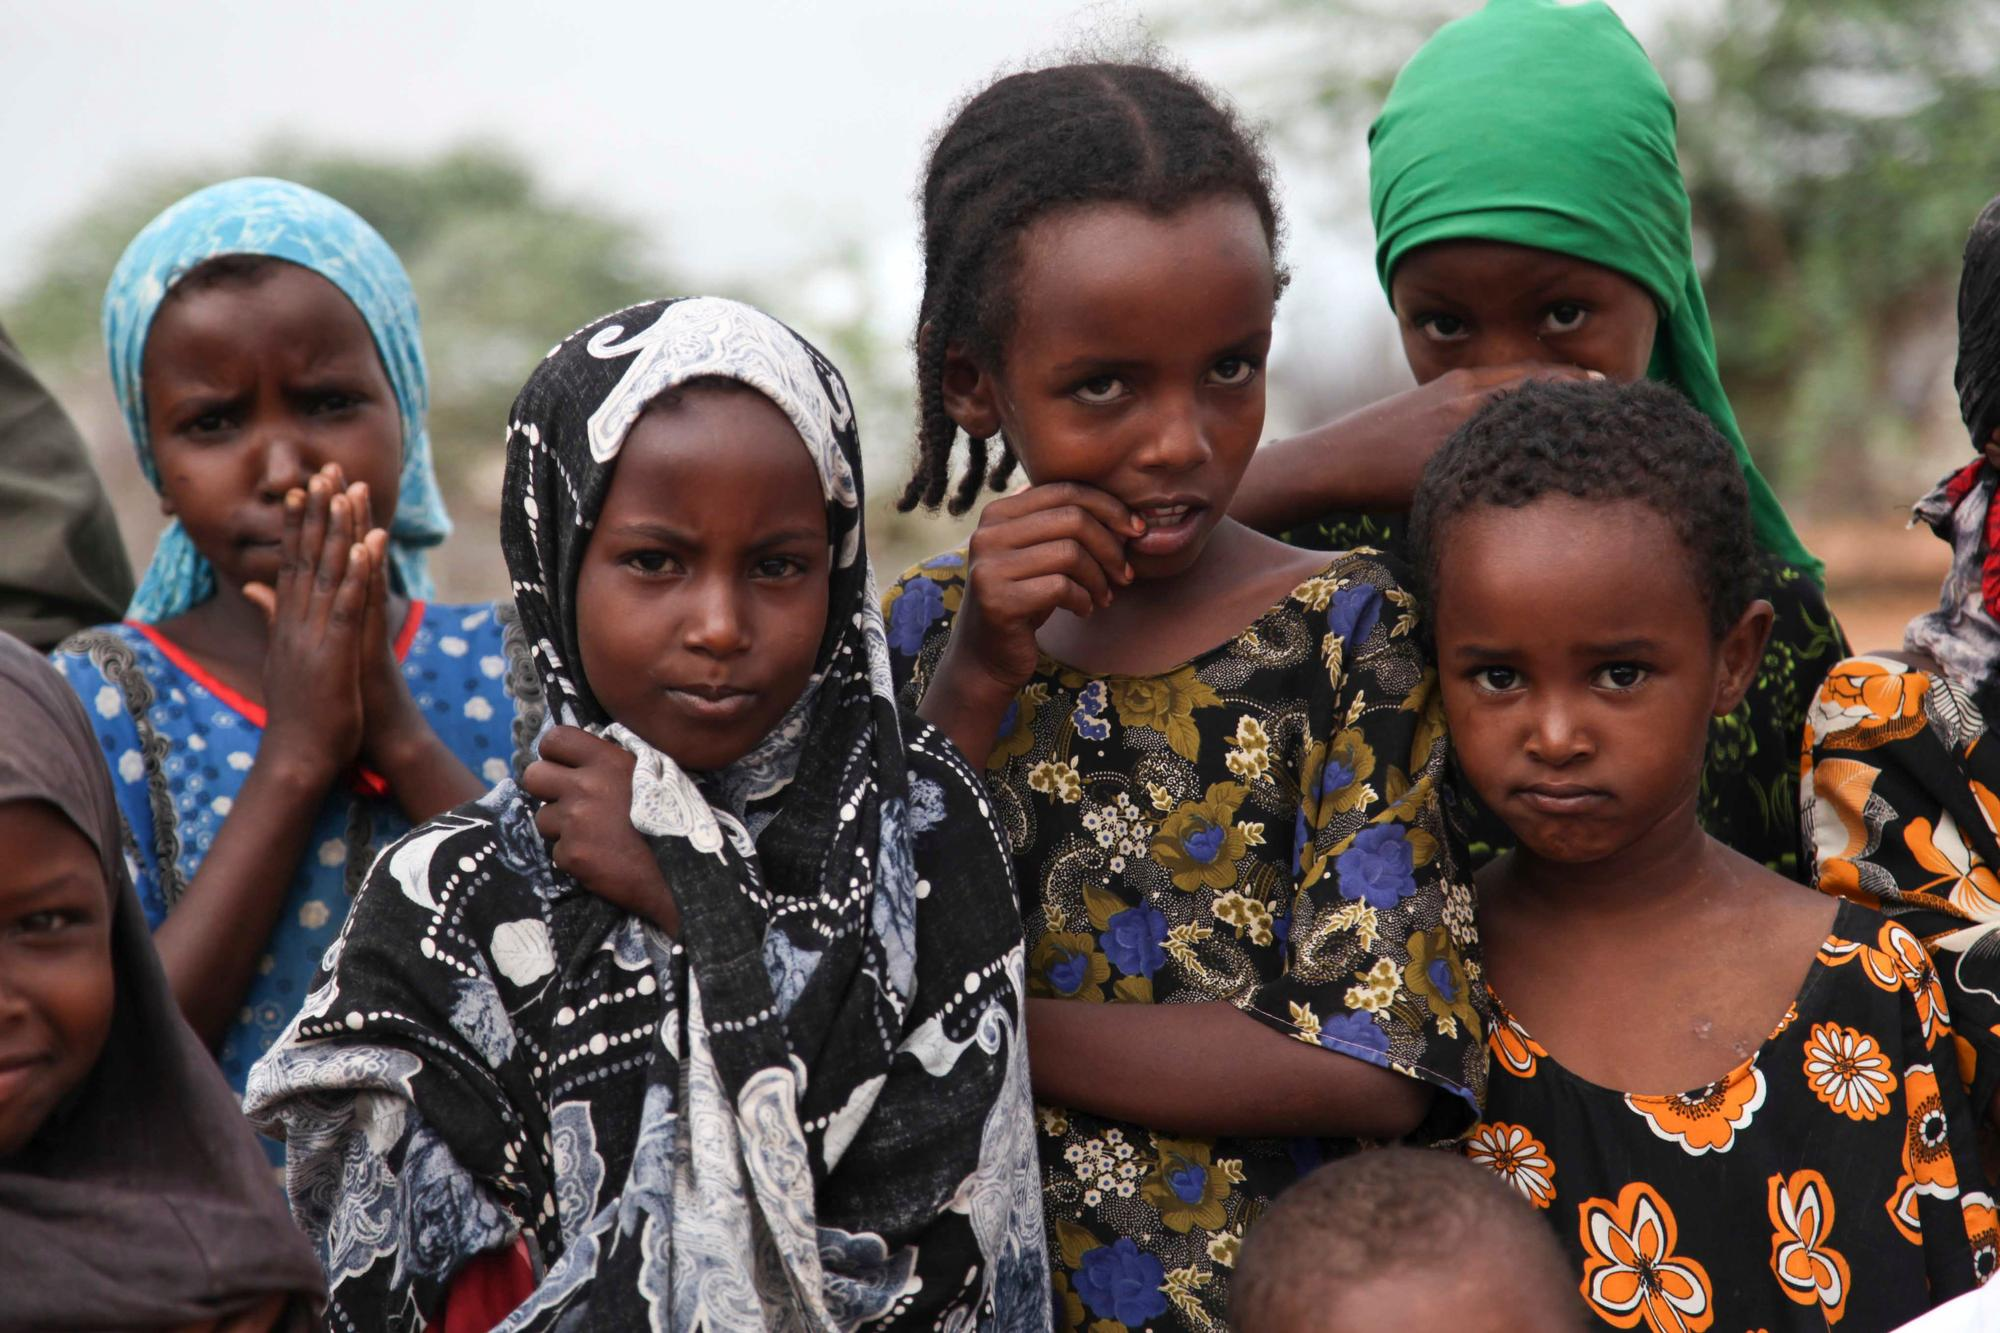 Somali children in Dagahaley refugee camp, Dadaab.